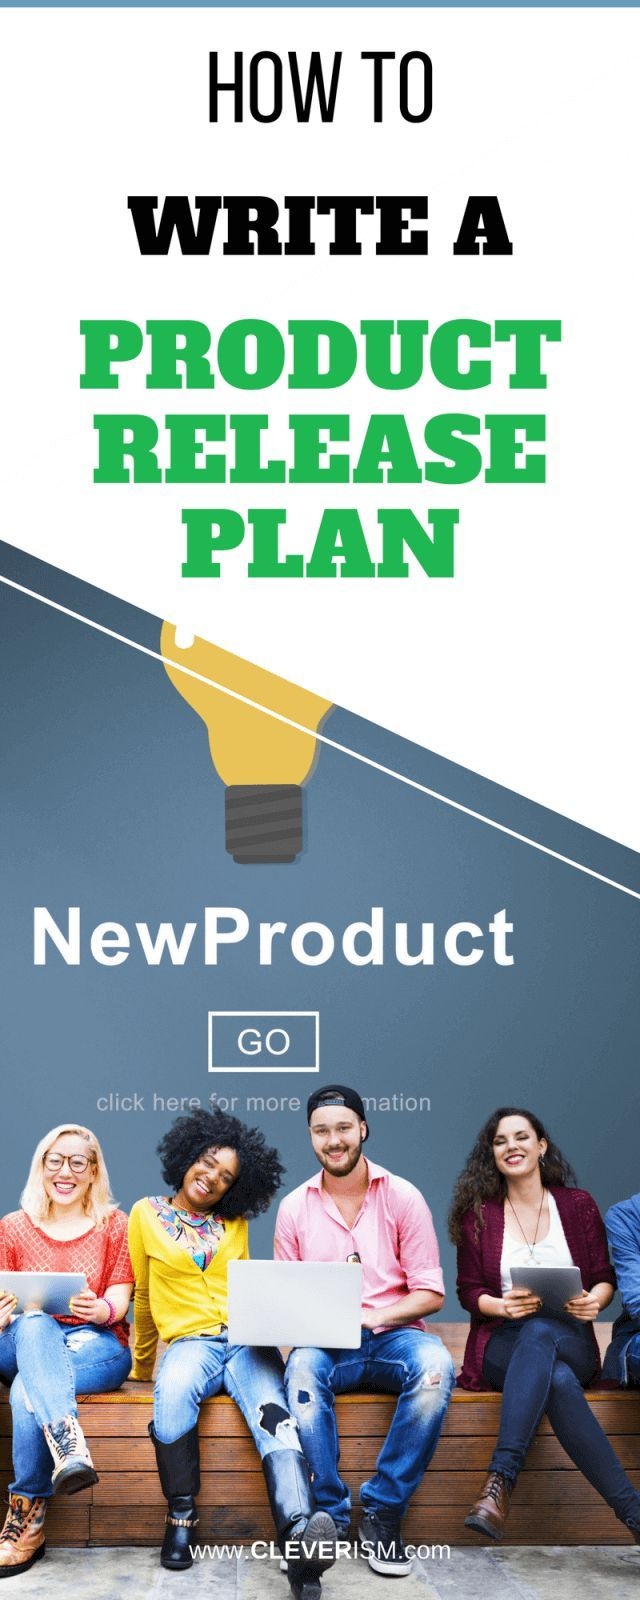 How to Write a Product Release Plan